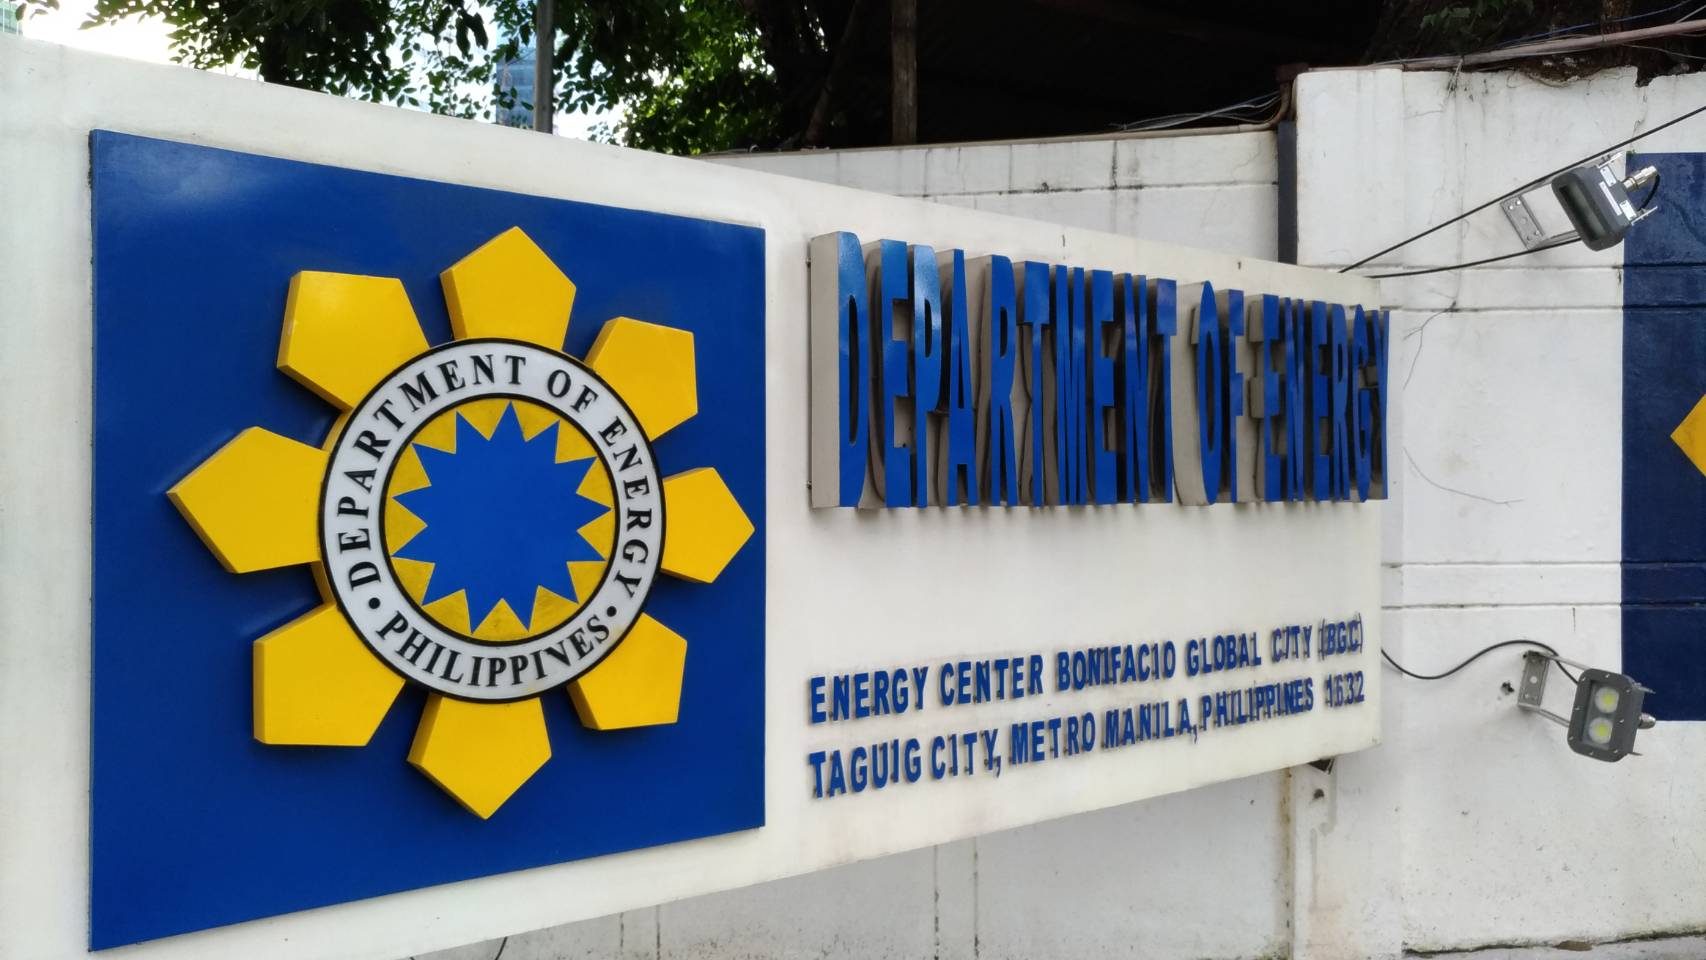 Philippines Department of Energy